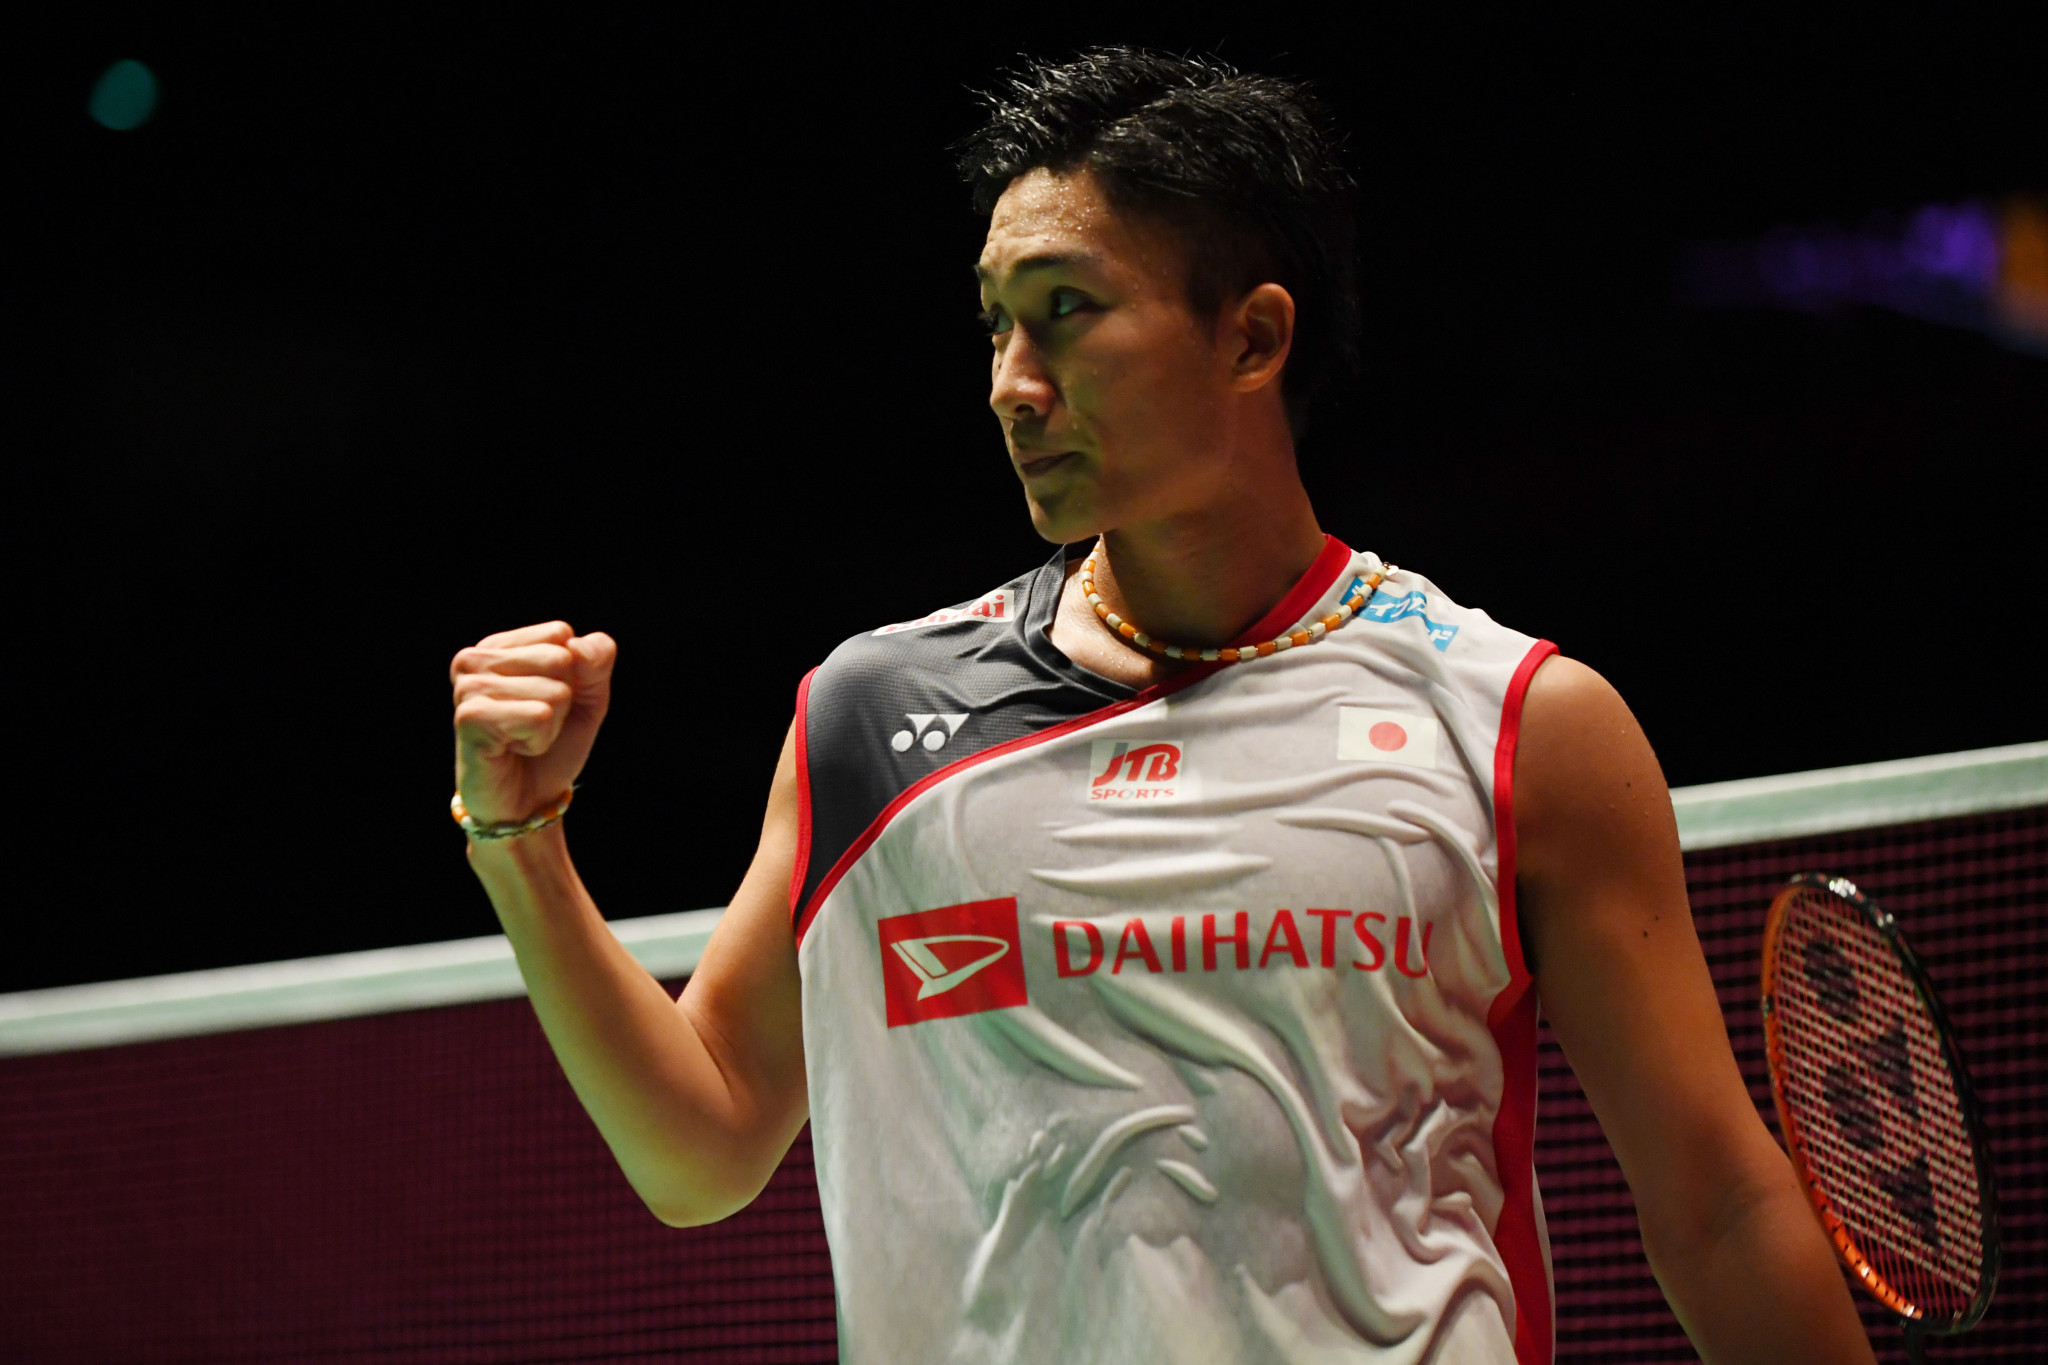 Badminton's best prepare to collide again at BWF China Open